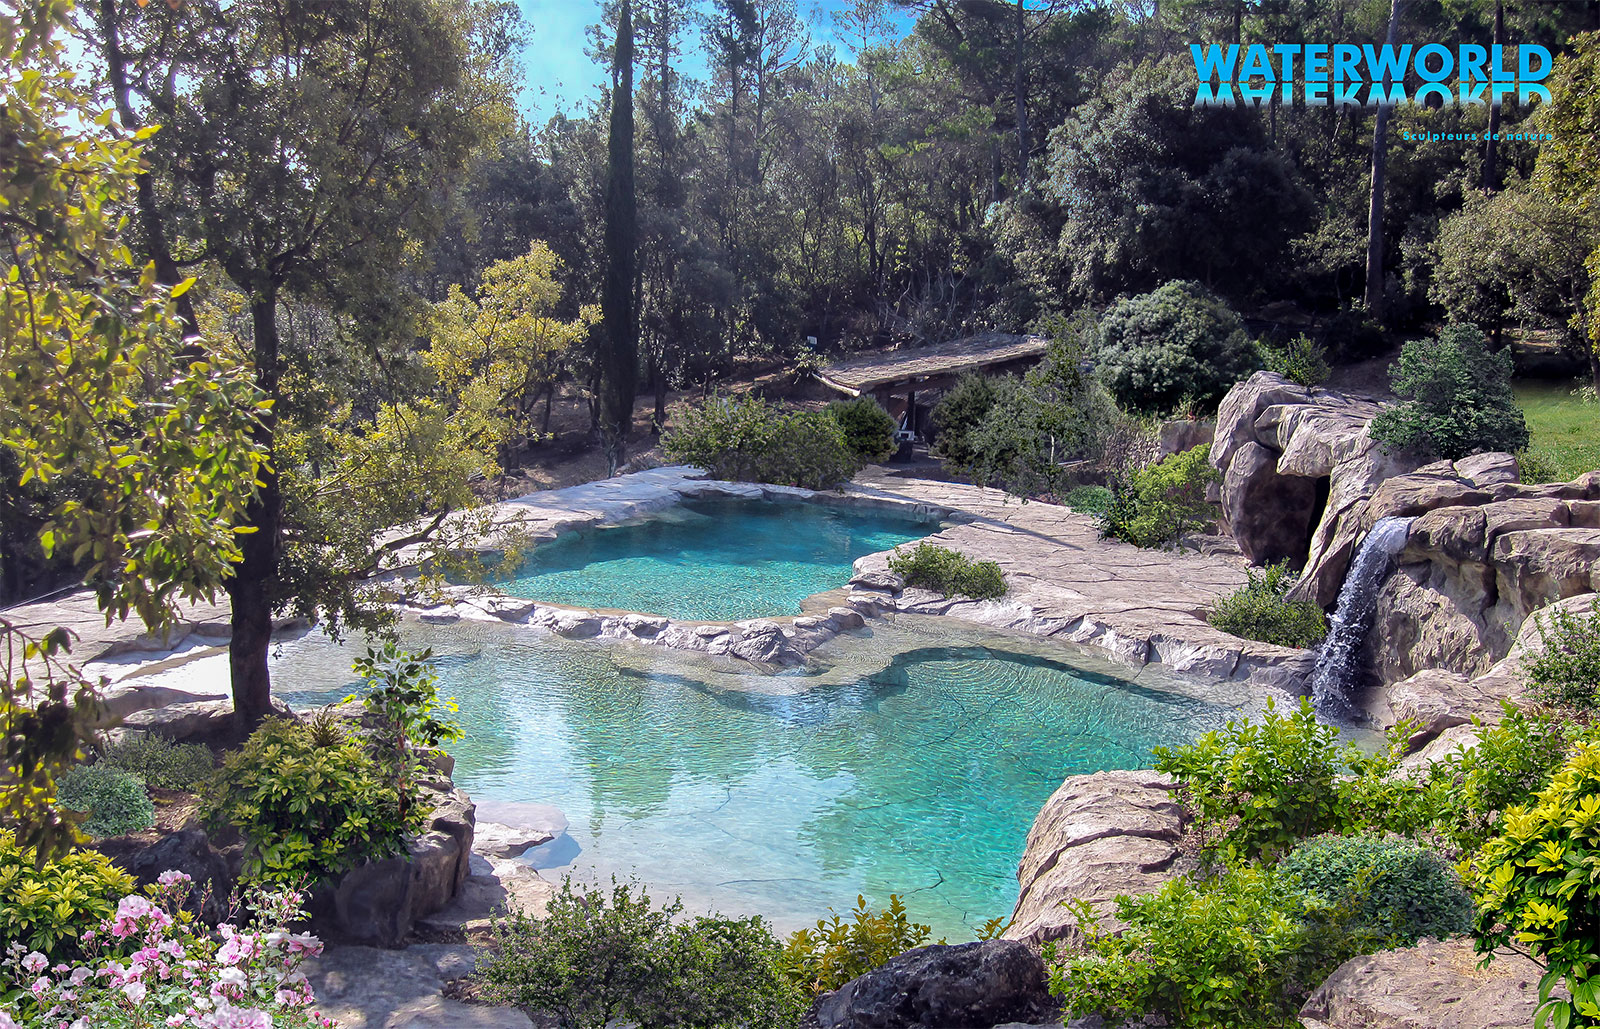 Piscines paysag es d 39 exception bassins cascades - Bassin naturel baignade fort de france ...